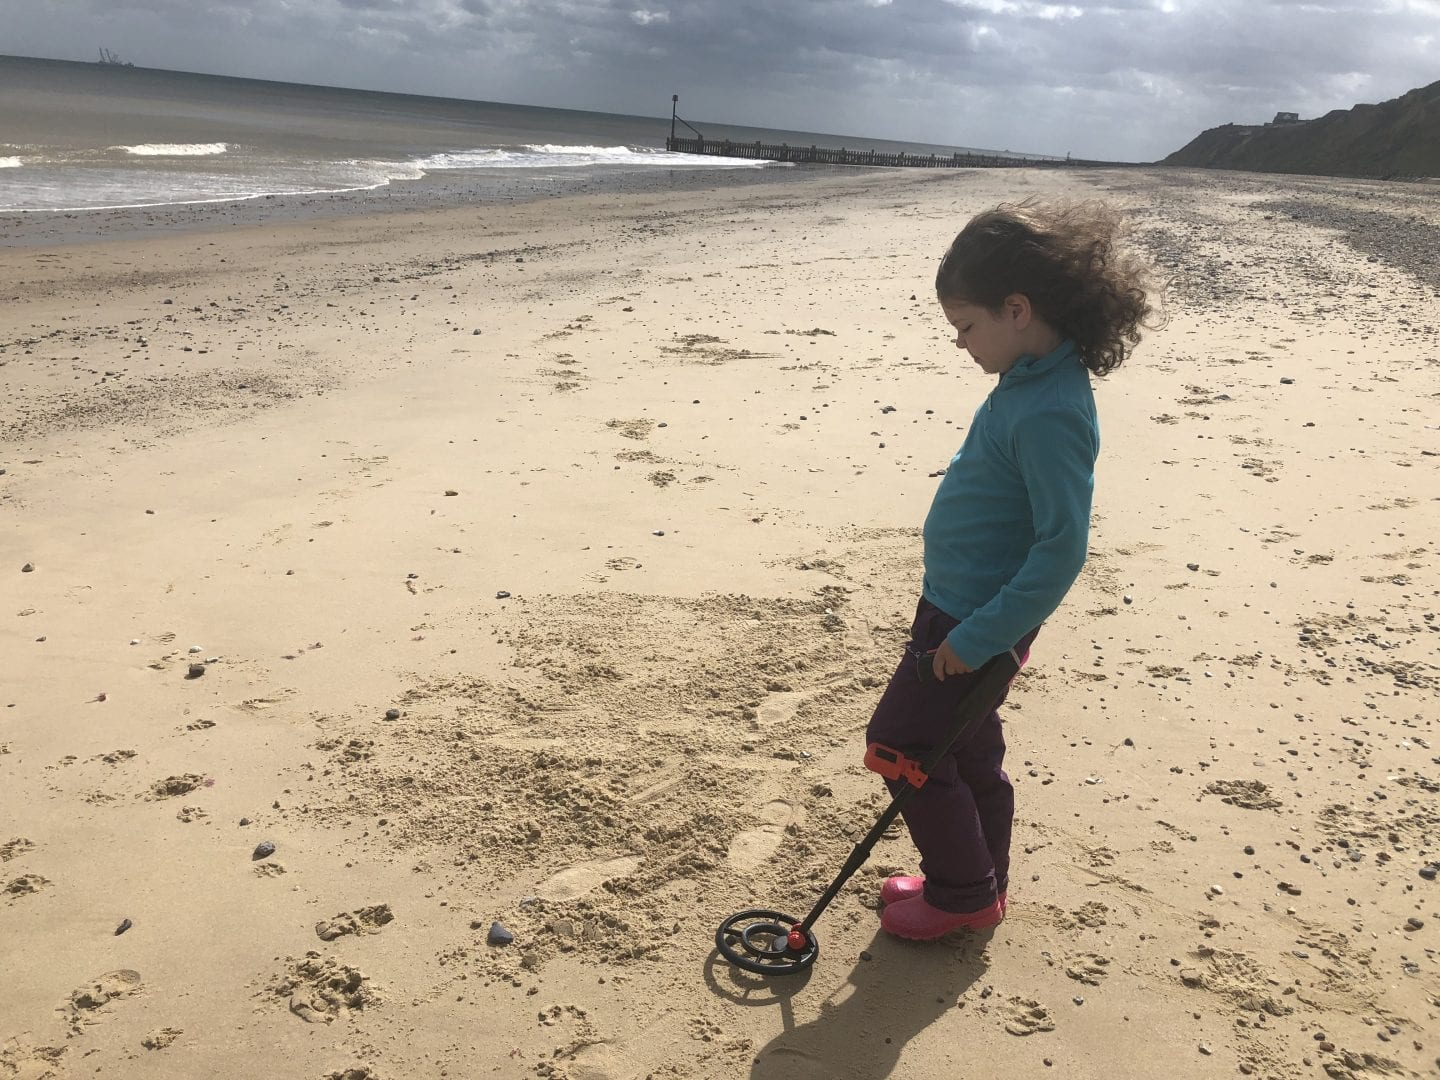 Young girl at the beach metal detecting.